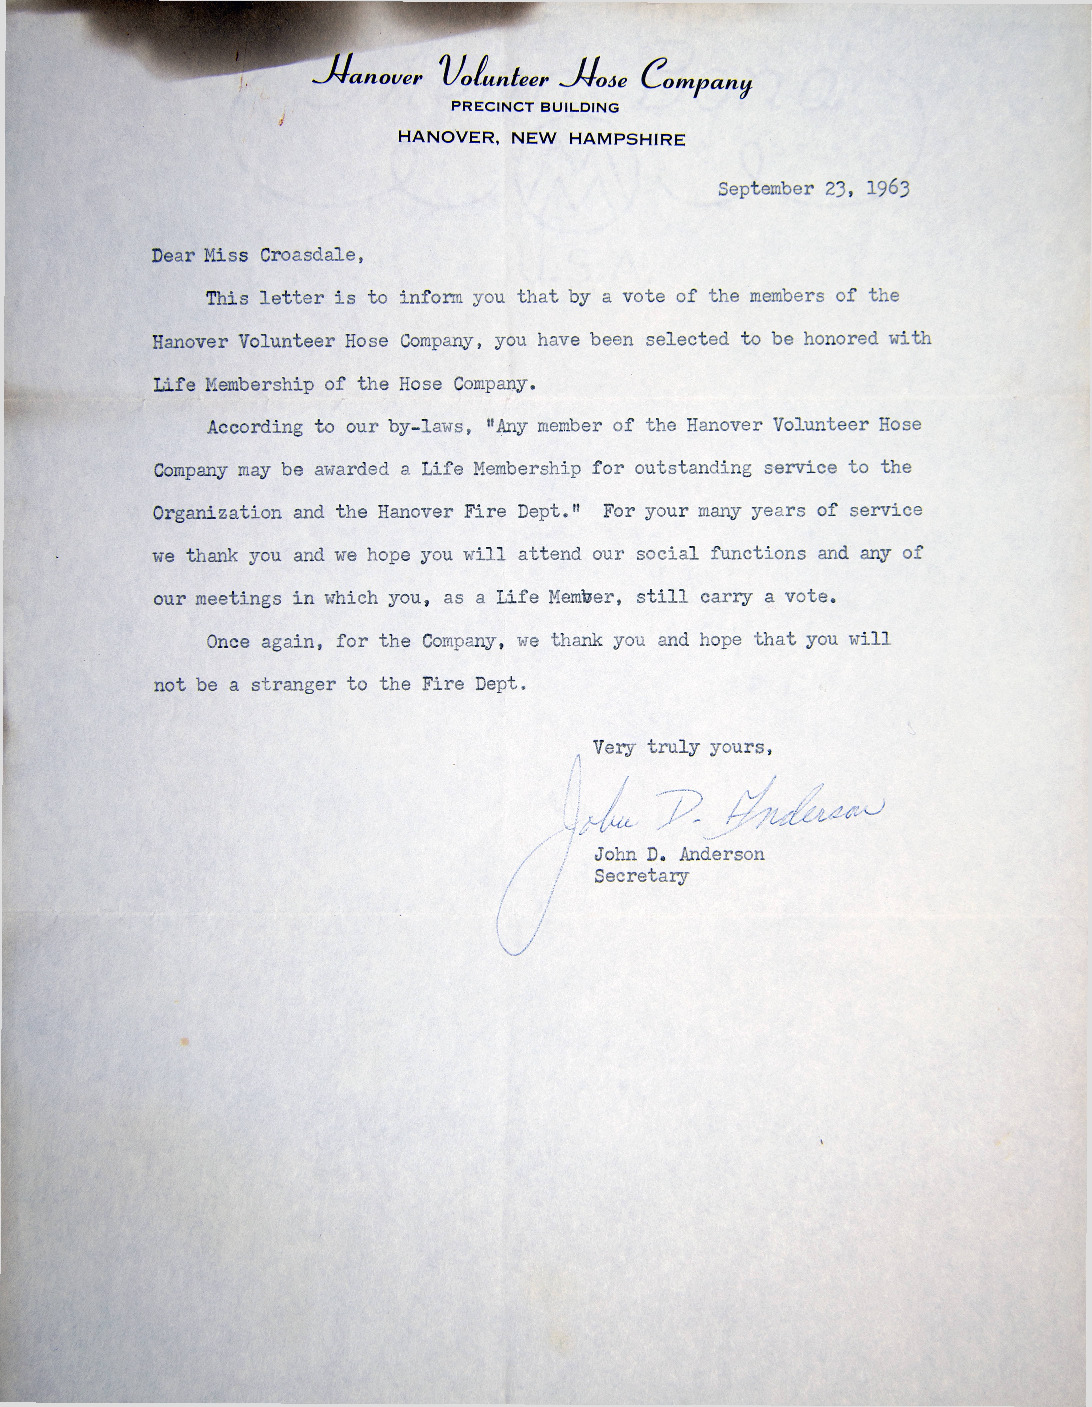 During the WWII labor shortage, Croasdale approached the Chief of the local Fire Department and convinced him to take her on as a volunteer. Despite the stir she caused because of her gender, she quickly proved herself invaluable to the department. Croasdale's home burned down in 1989, but this letter awarding her lifetime membership in the Hanover Volunteer Hose Company fittingly survived the blaze.